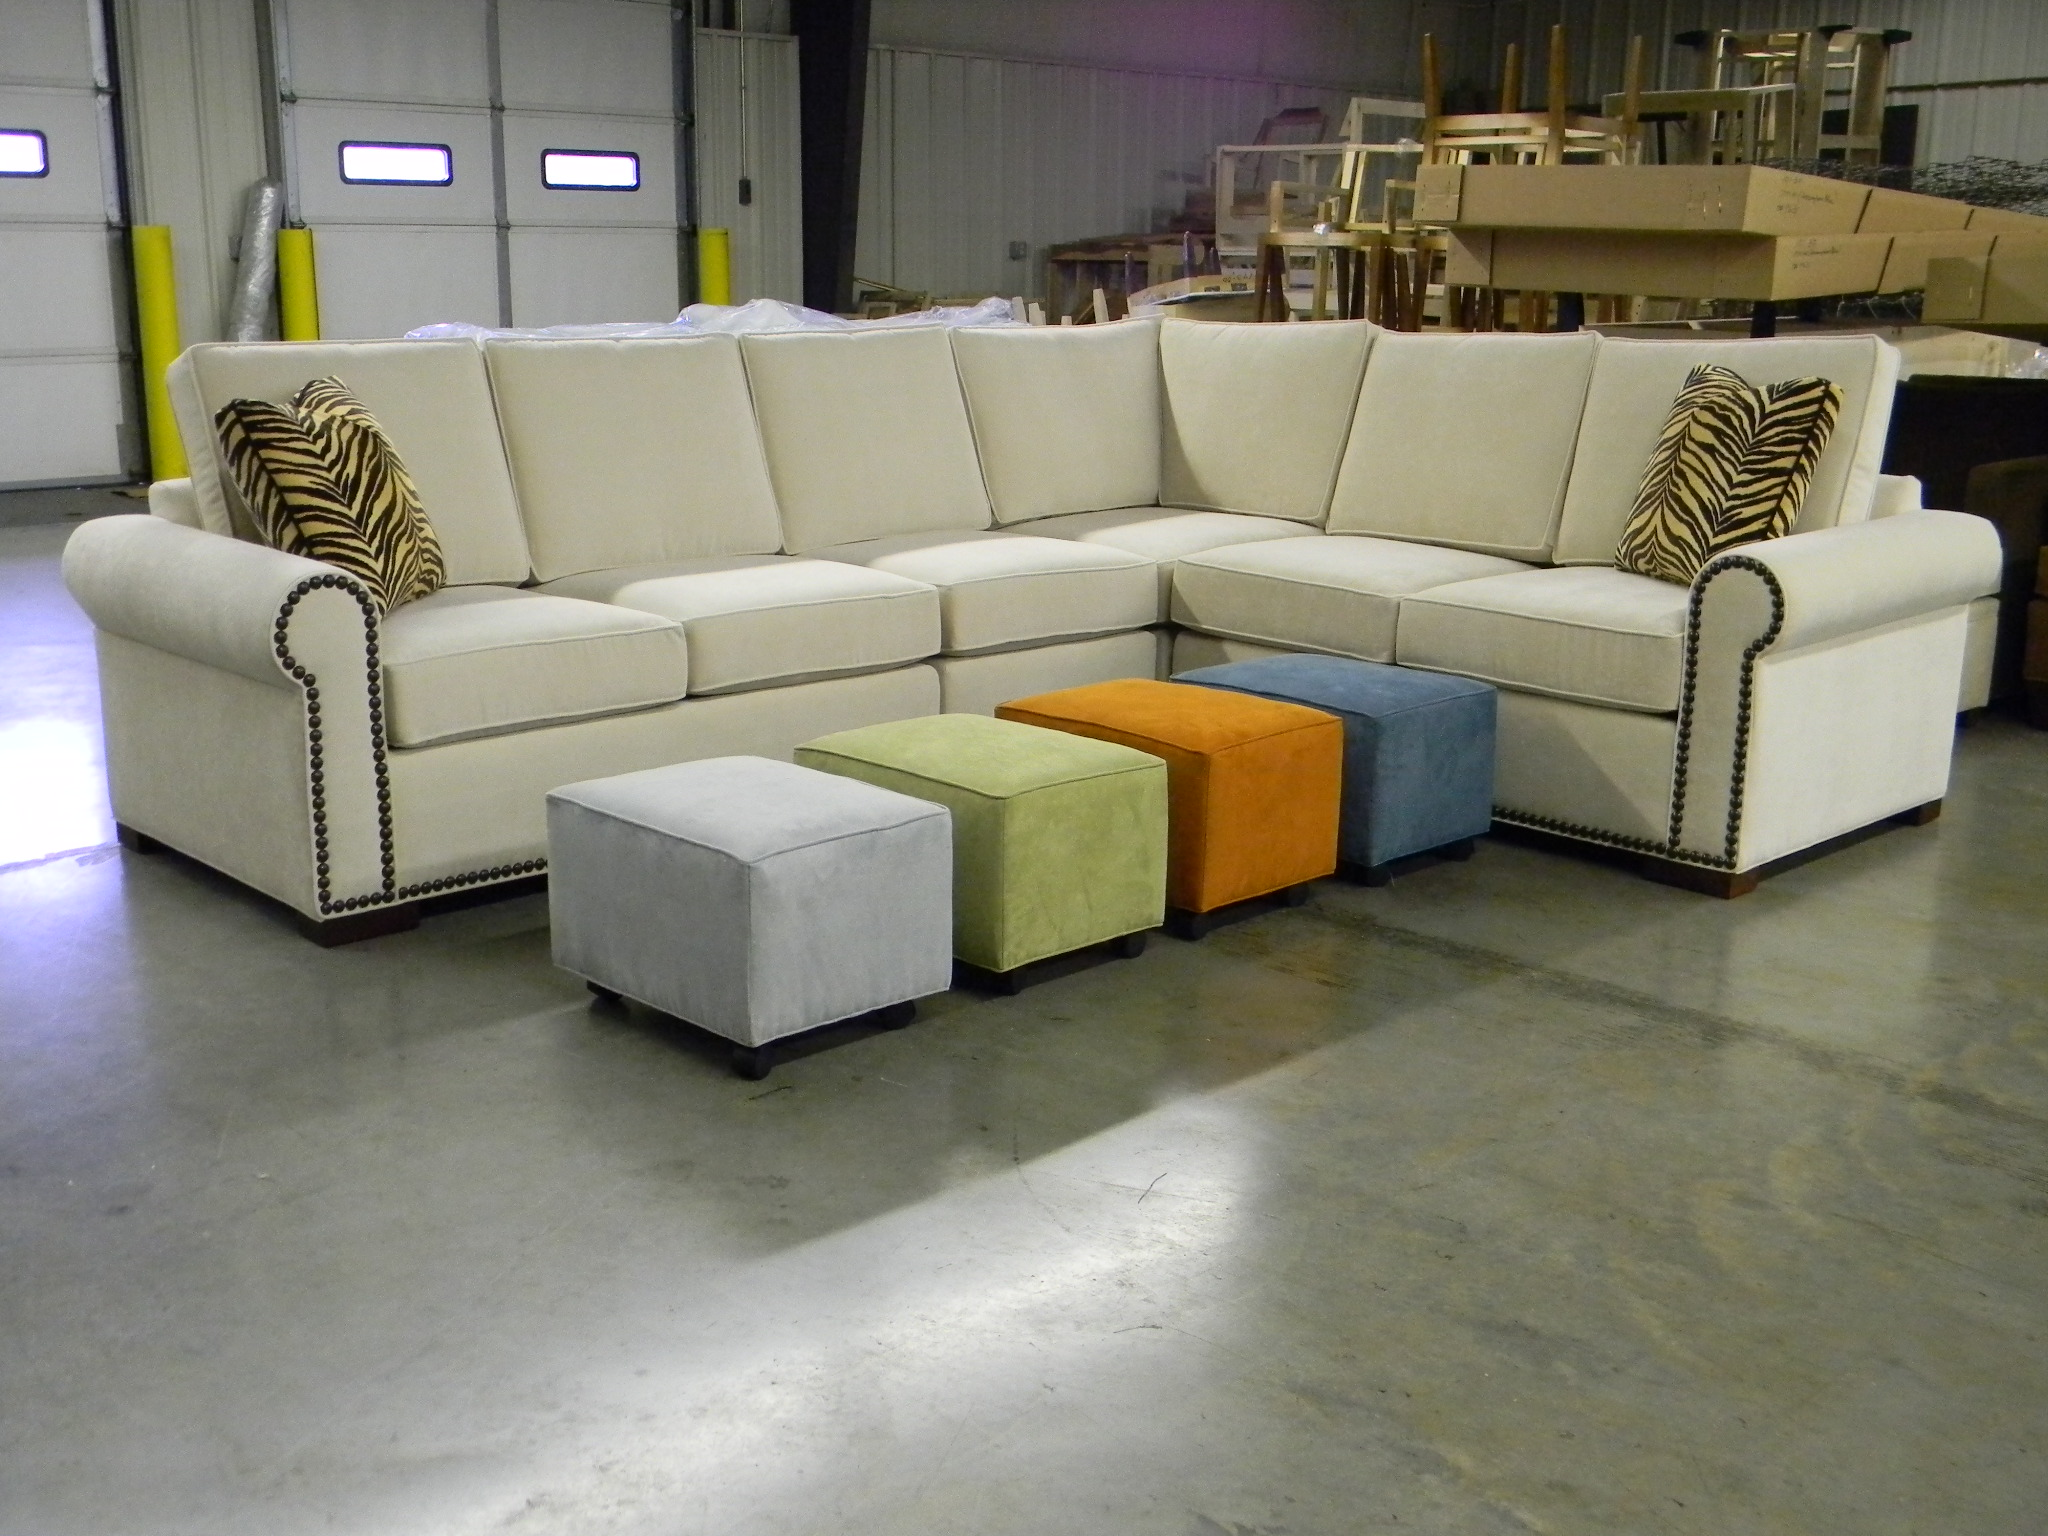 Awesome sofa sectional connector sectional sofas for Sofa sectional furniture connector